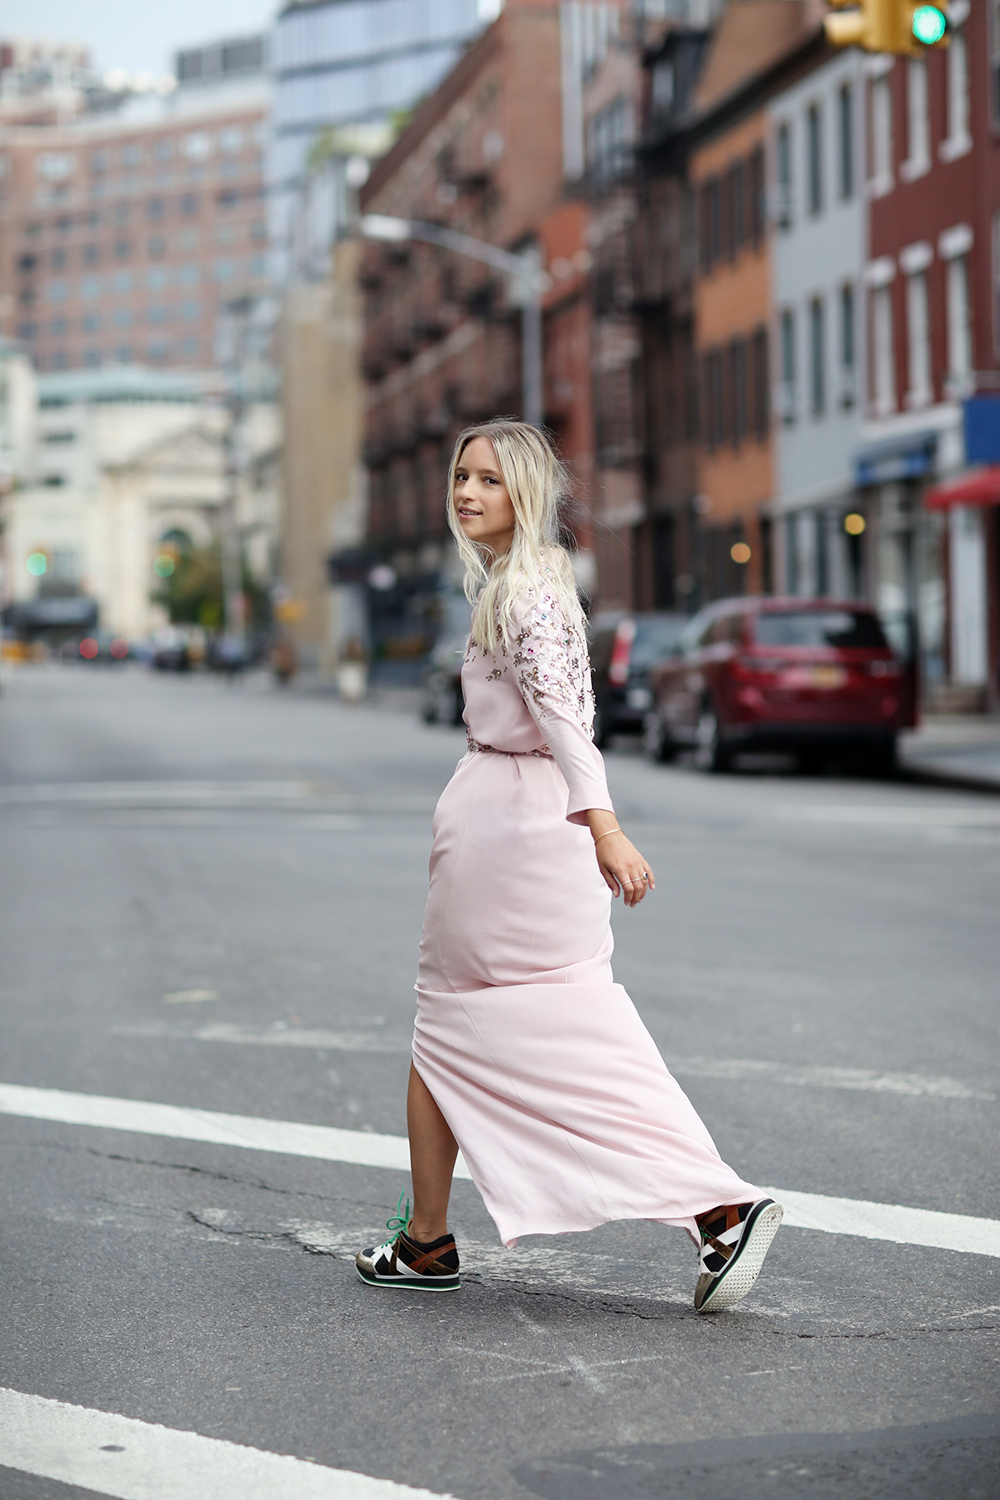 Long Dress Sneakers Maxi Vestido Y Deportivas Front Row